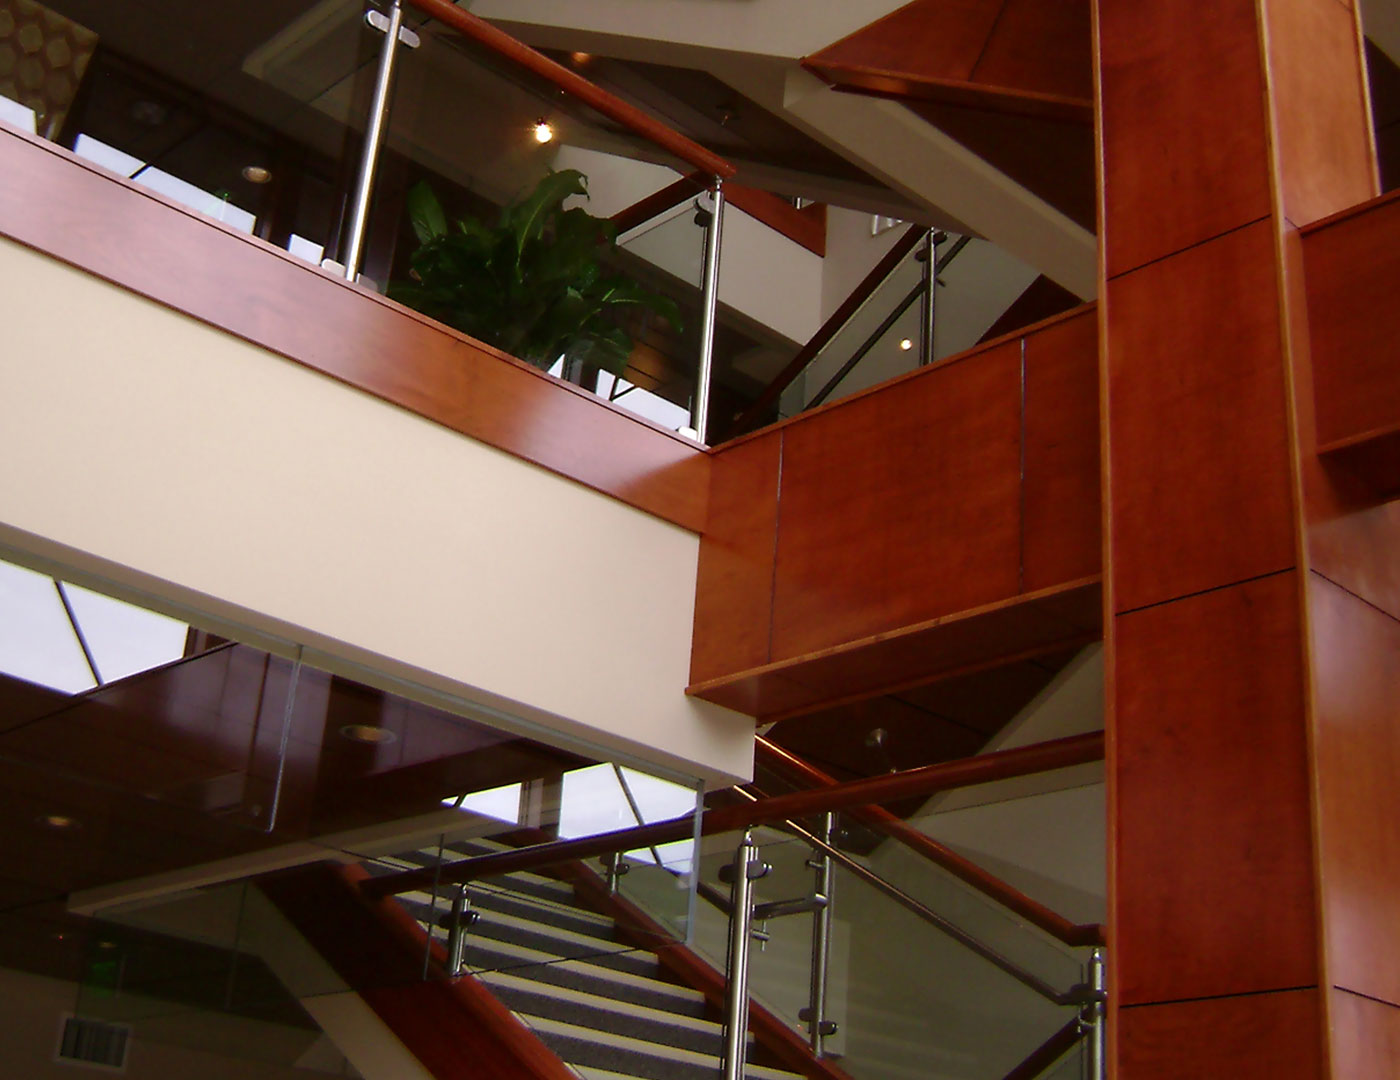 Stainless steel post supported glass railing on interior stairs and balcony overlooks